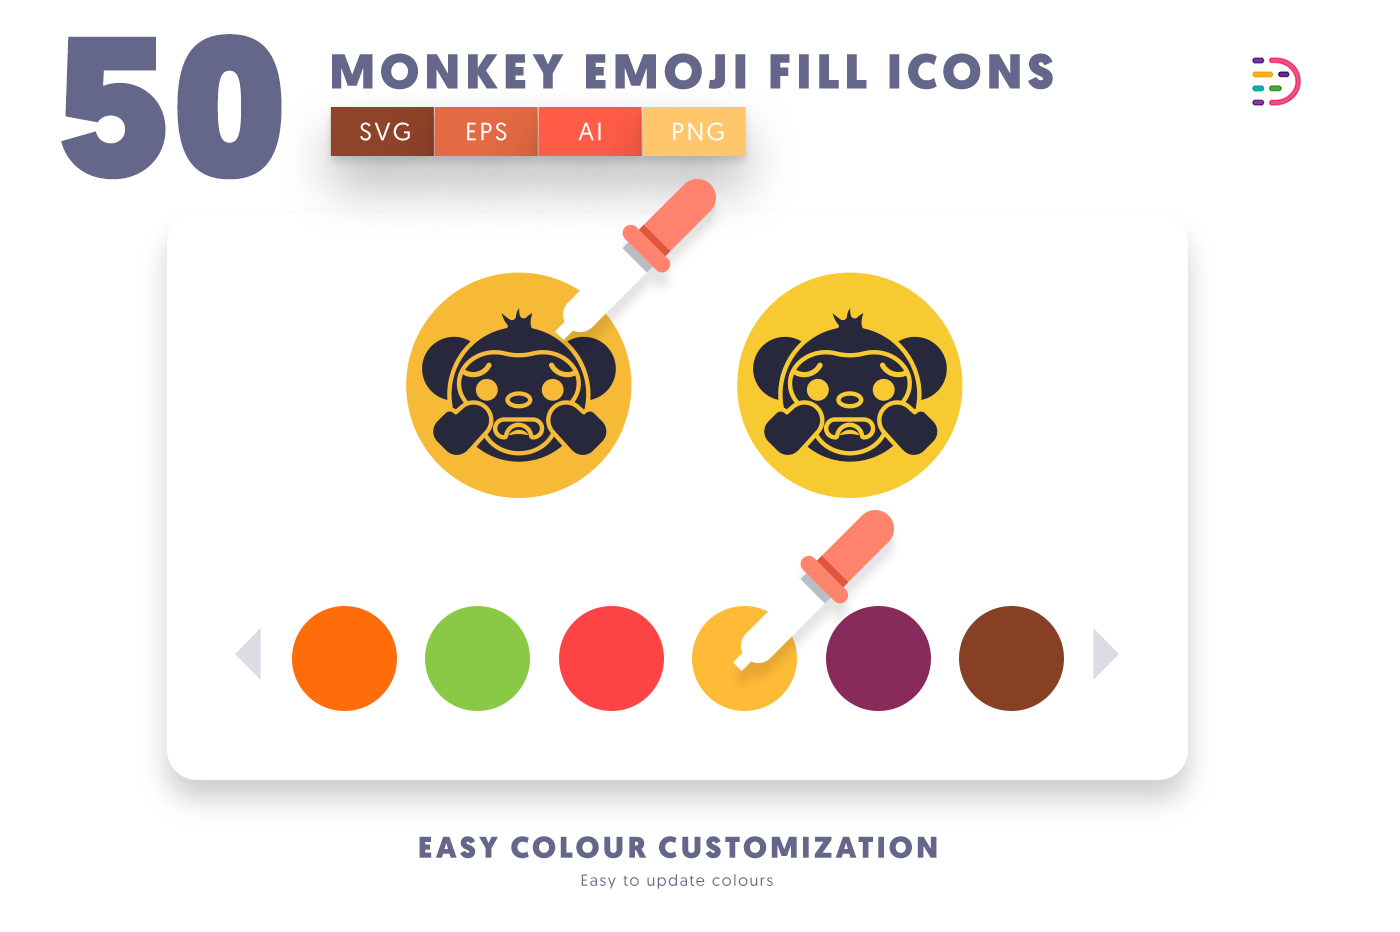 Customizable and vector 50 Monkey Emoji Fill Icons